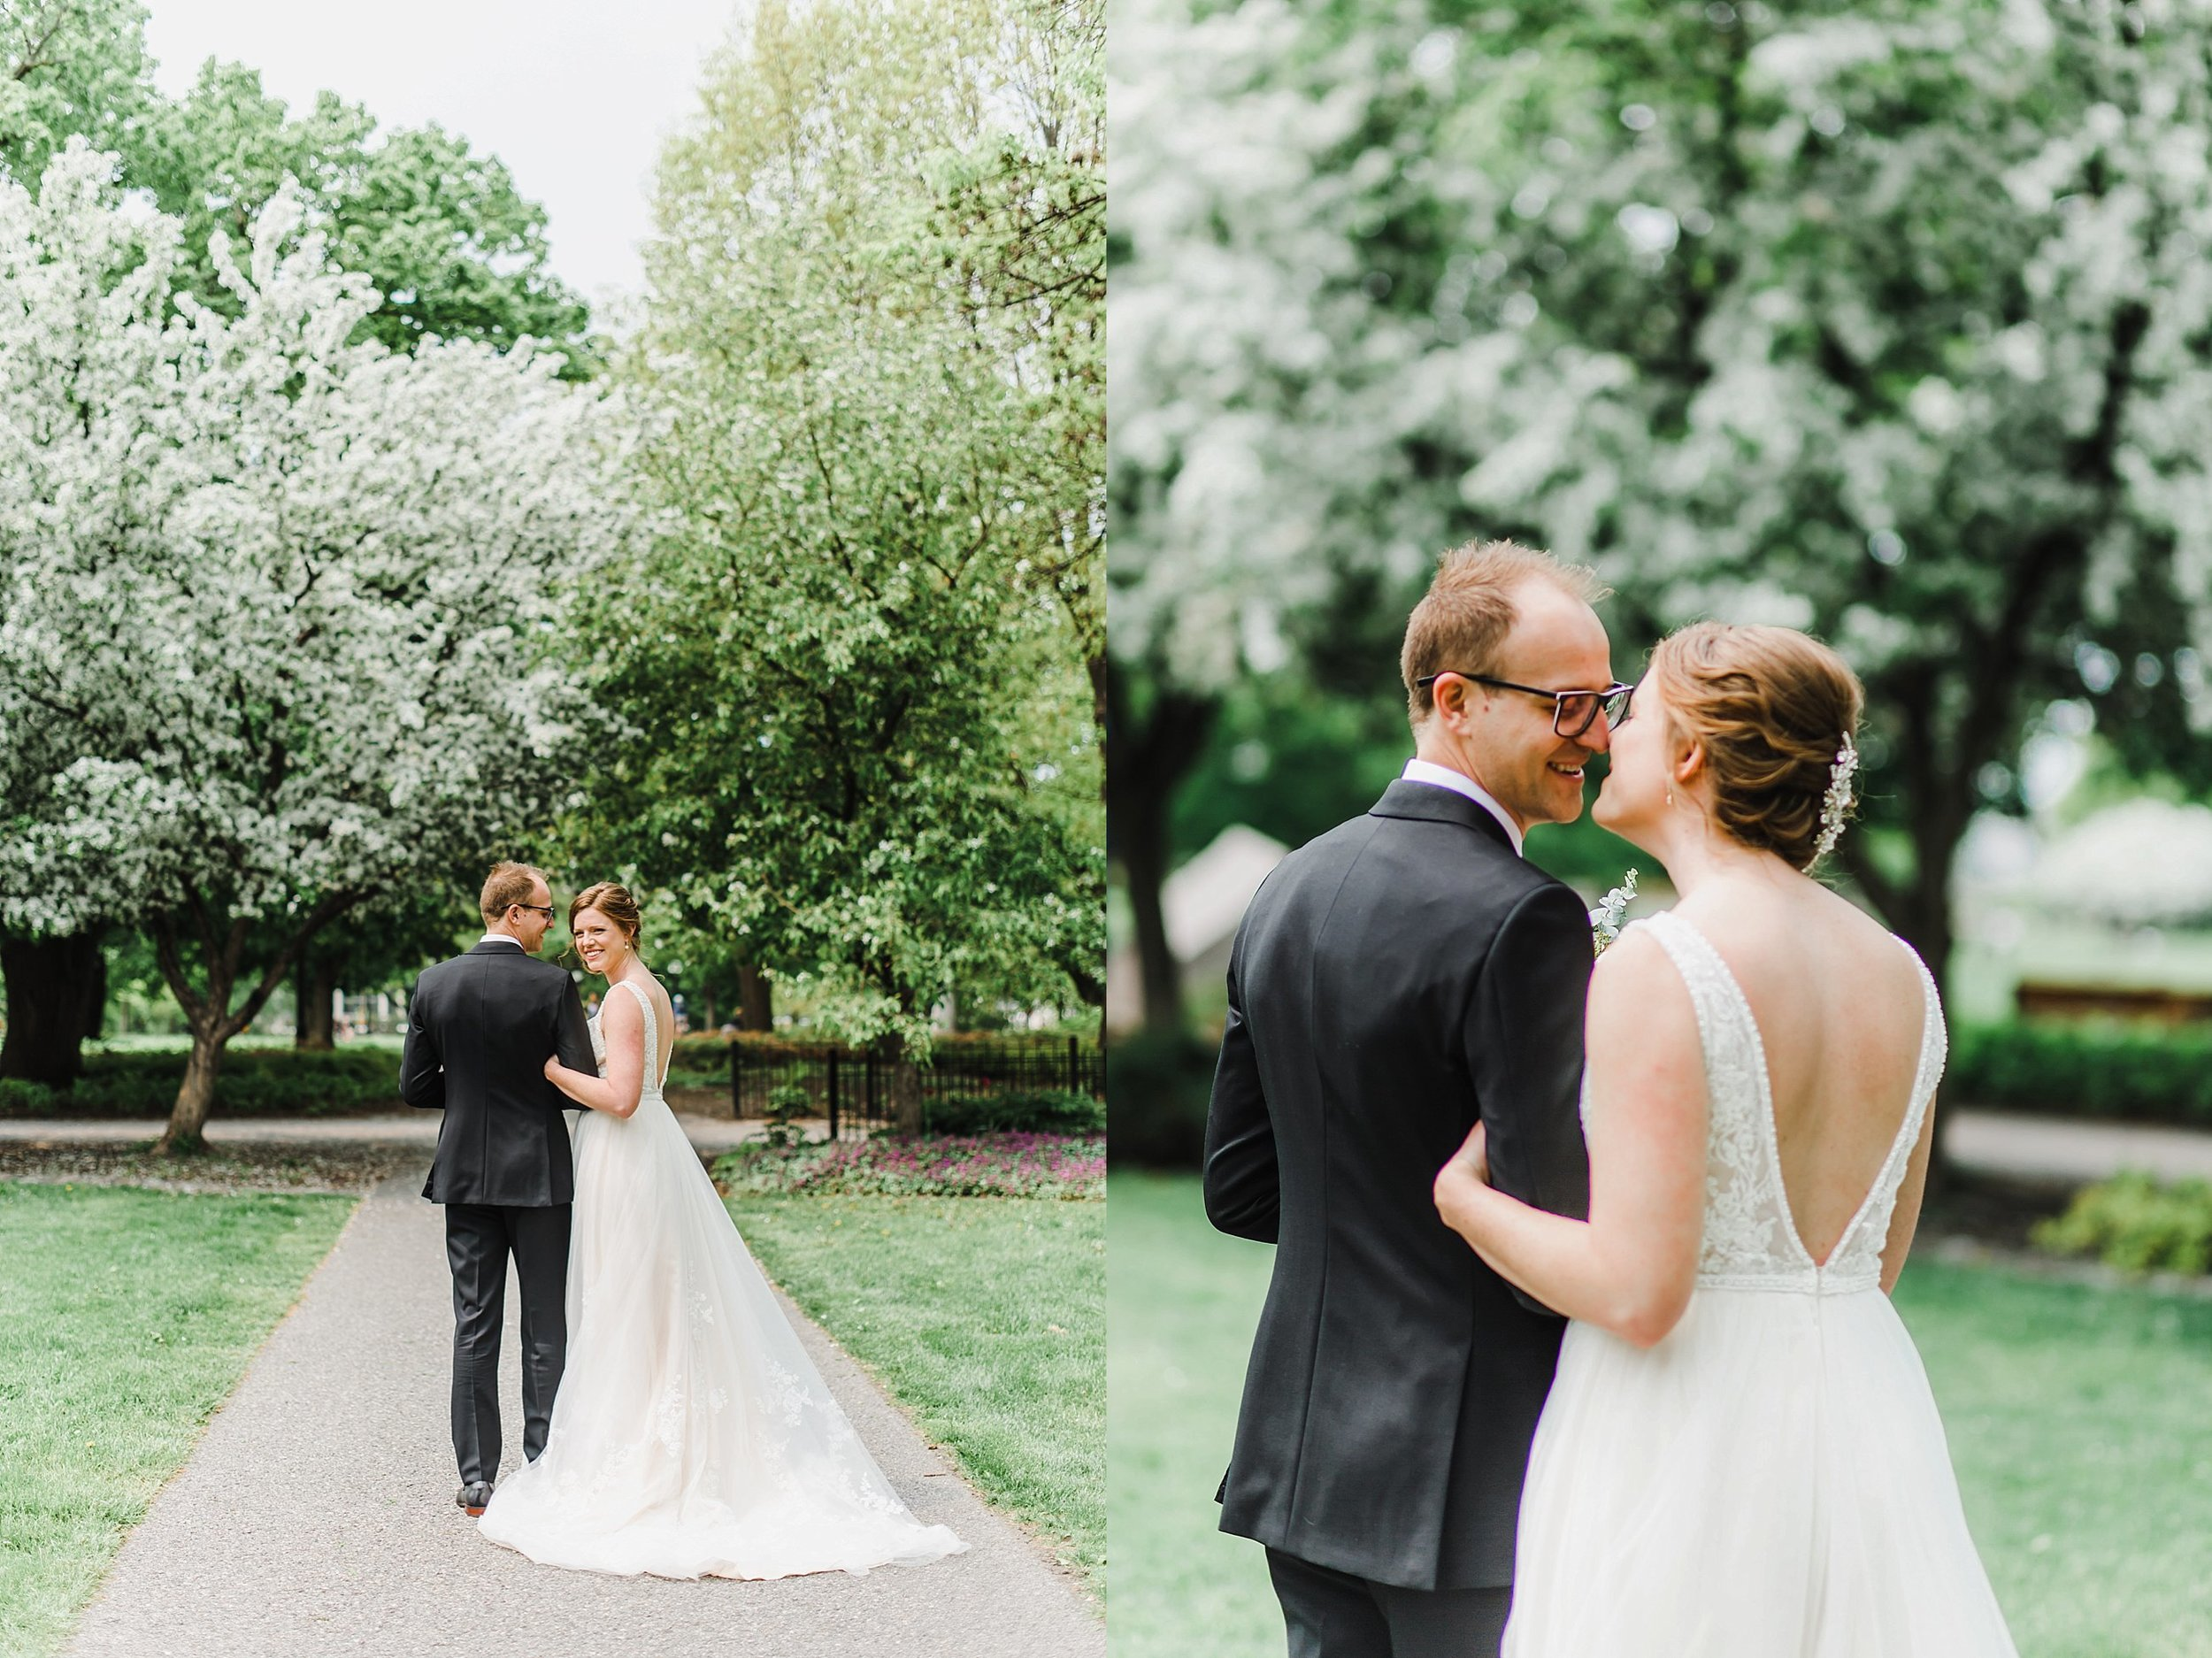 light airy indie fine art ottawa wedding photographer | Ali and Batoul Photography_0316.jpg